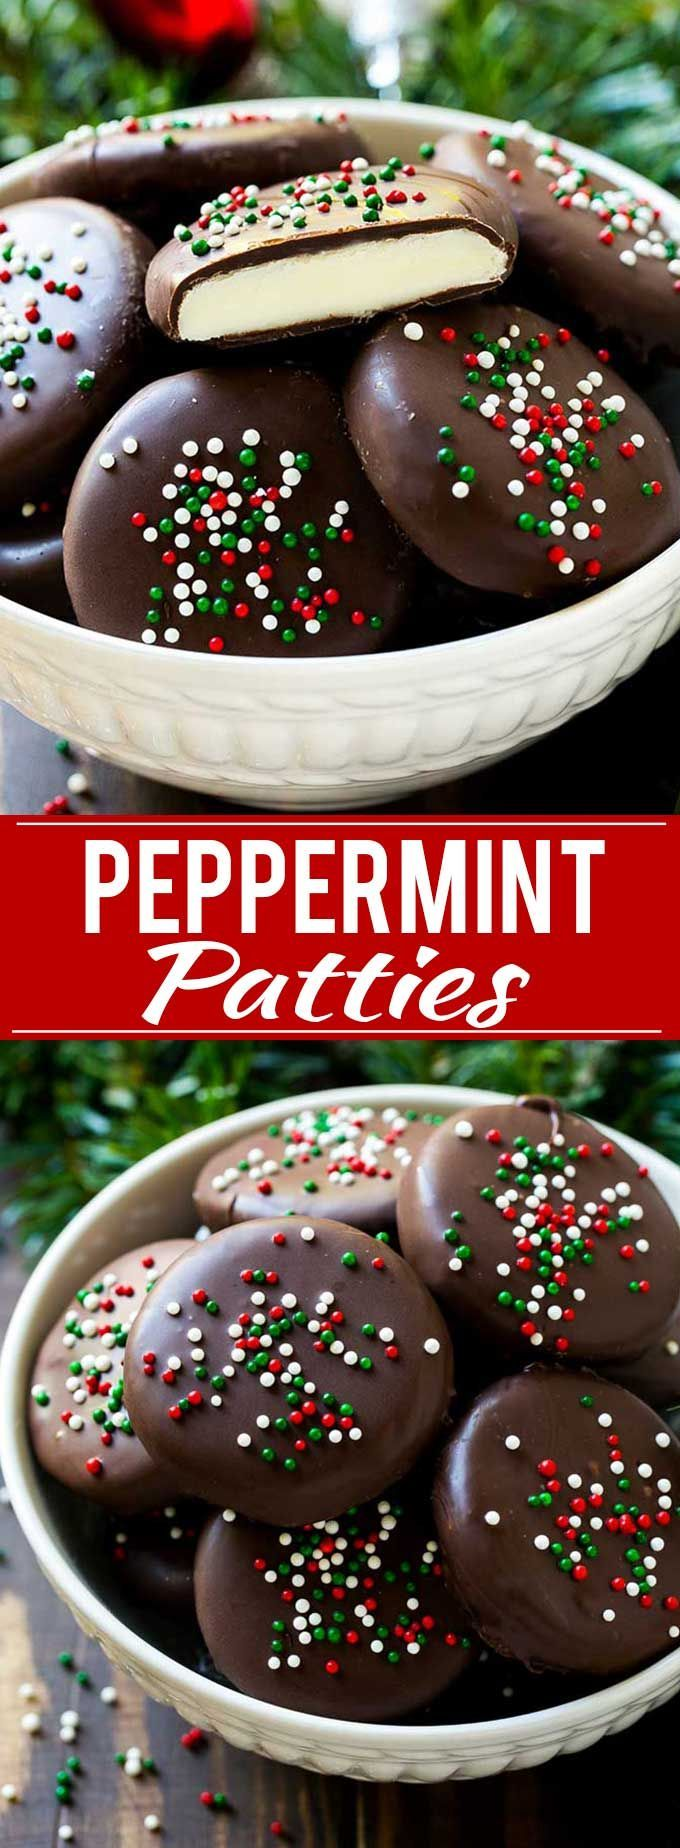 Peppermint Patties Recipe. #mint #Christmas #candy